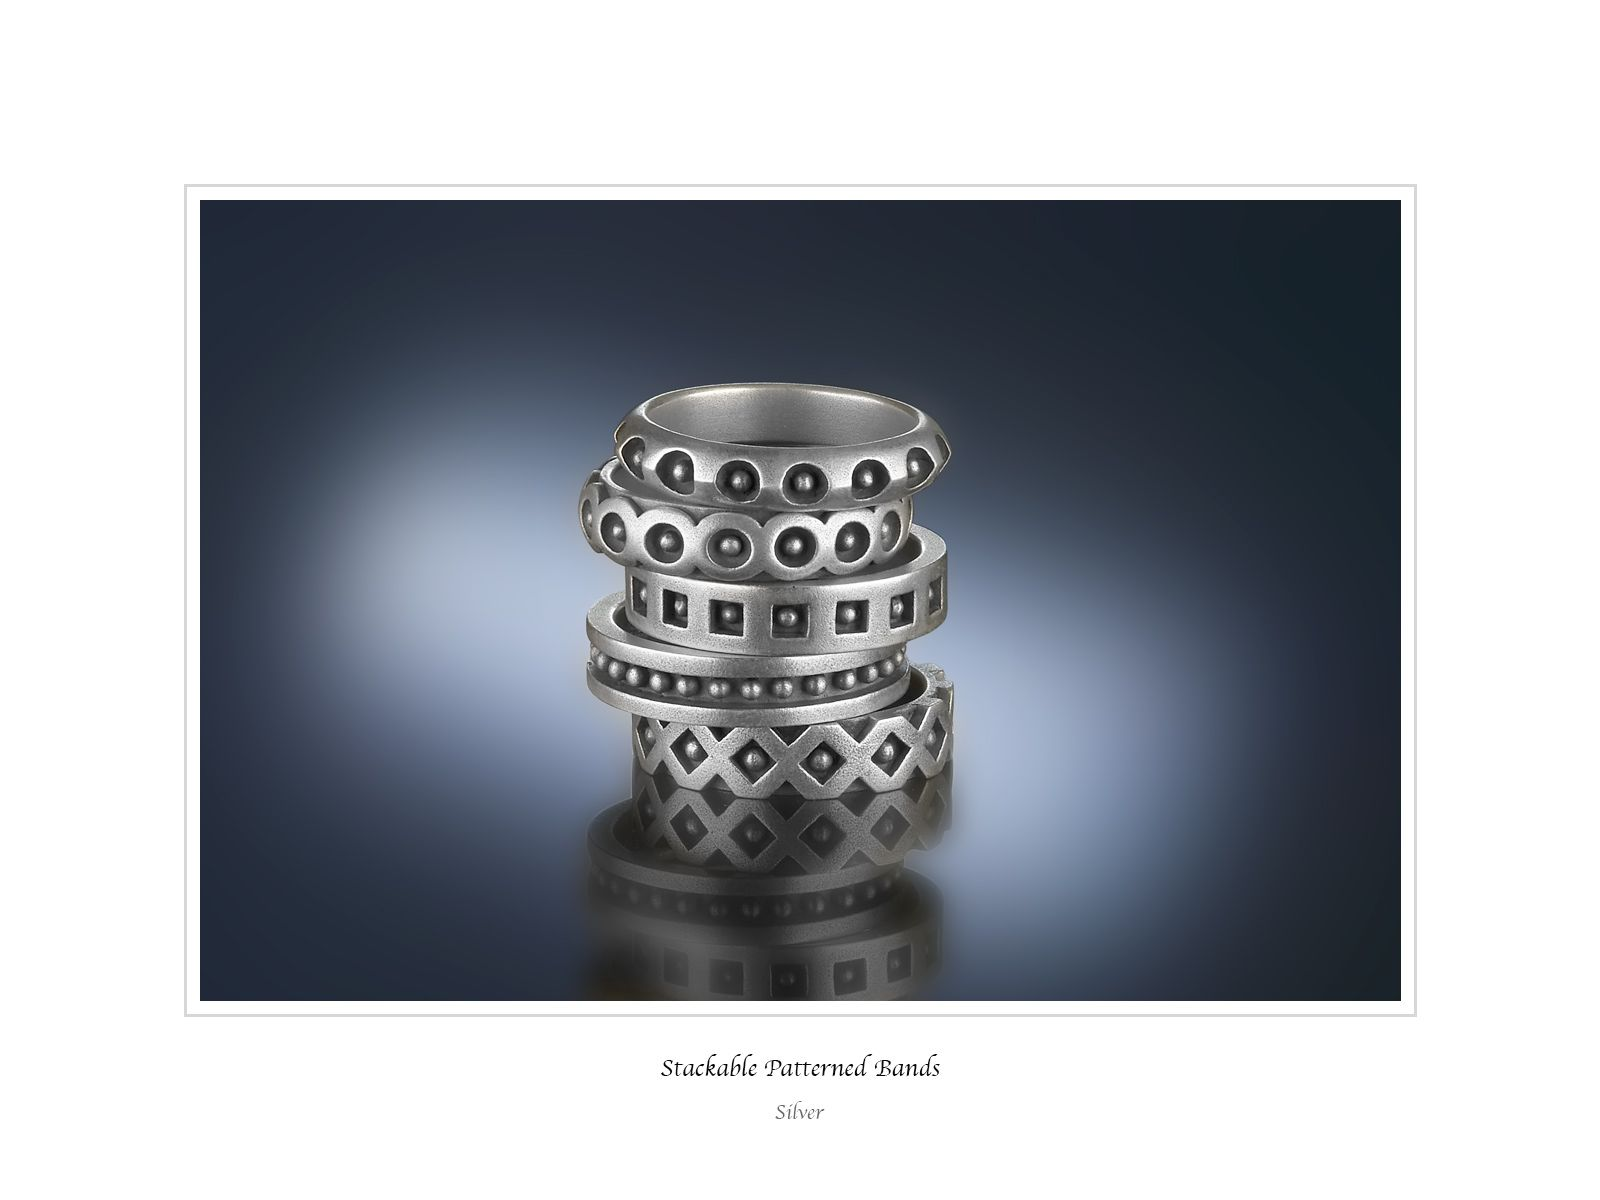 Stackable-Patterned-Bands-silver1.jpg